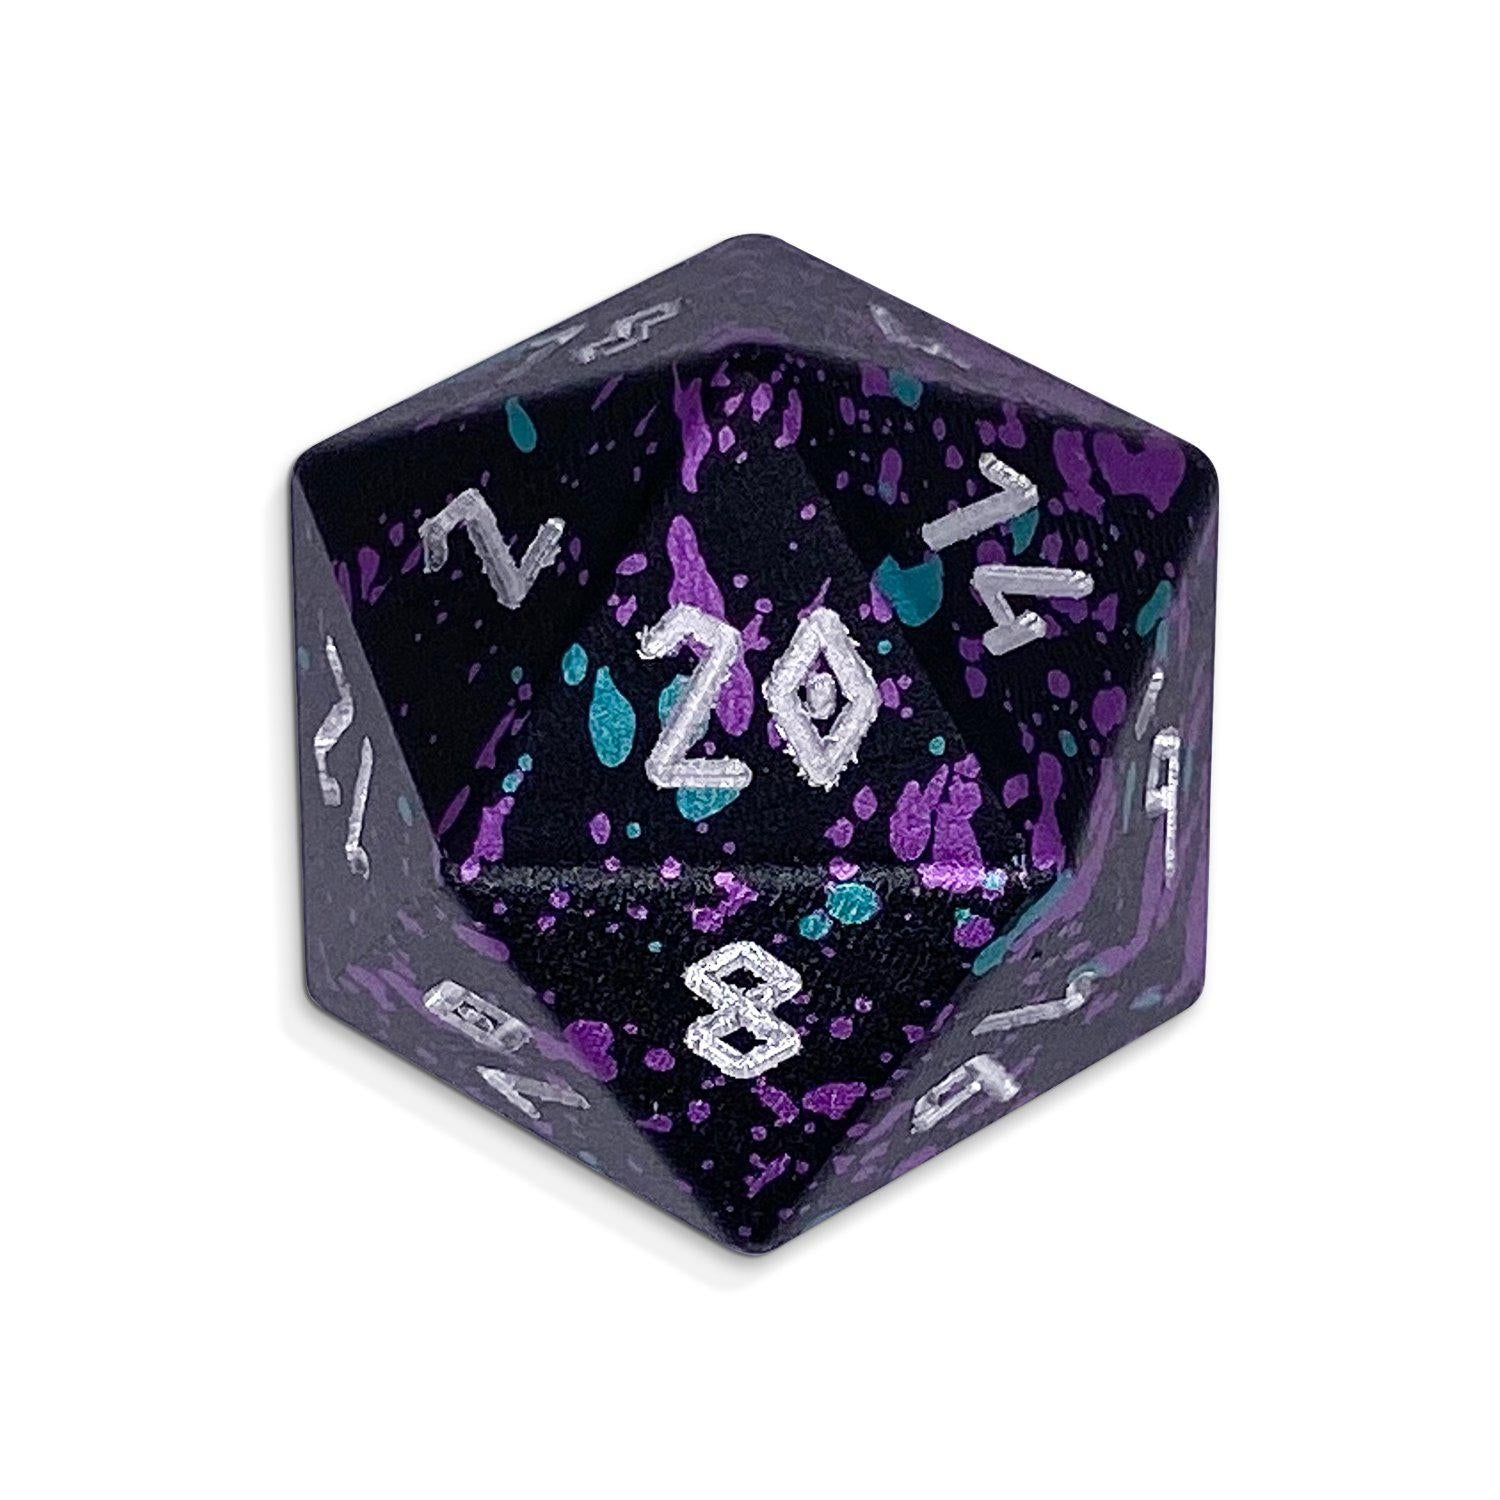 Court Jester - Single D20 Wondrous 20mm 6063 Aircraft Grade Aluminum Metal Die